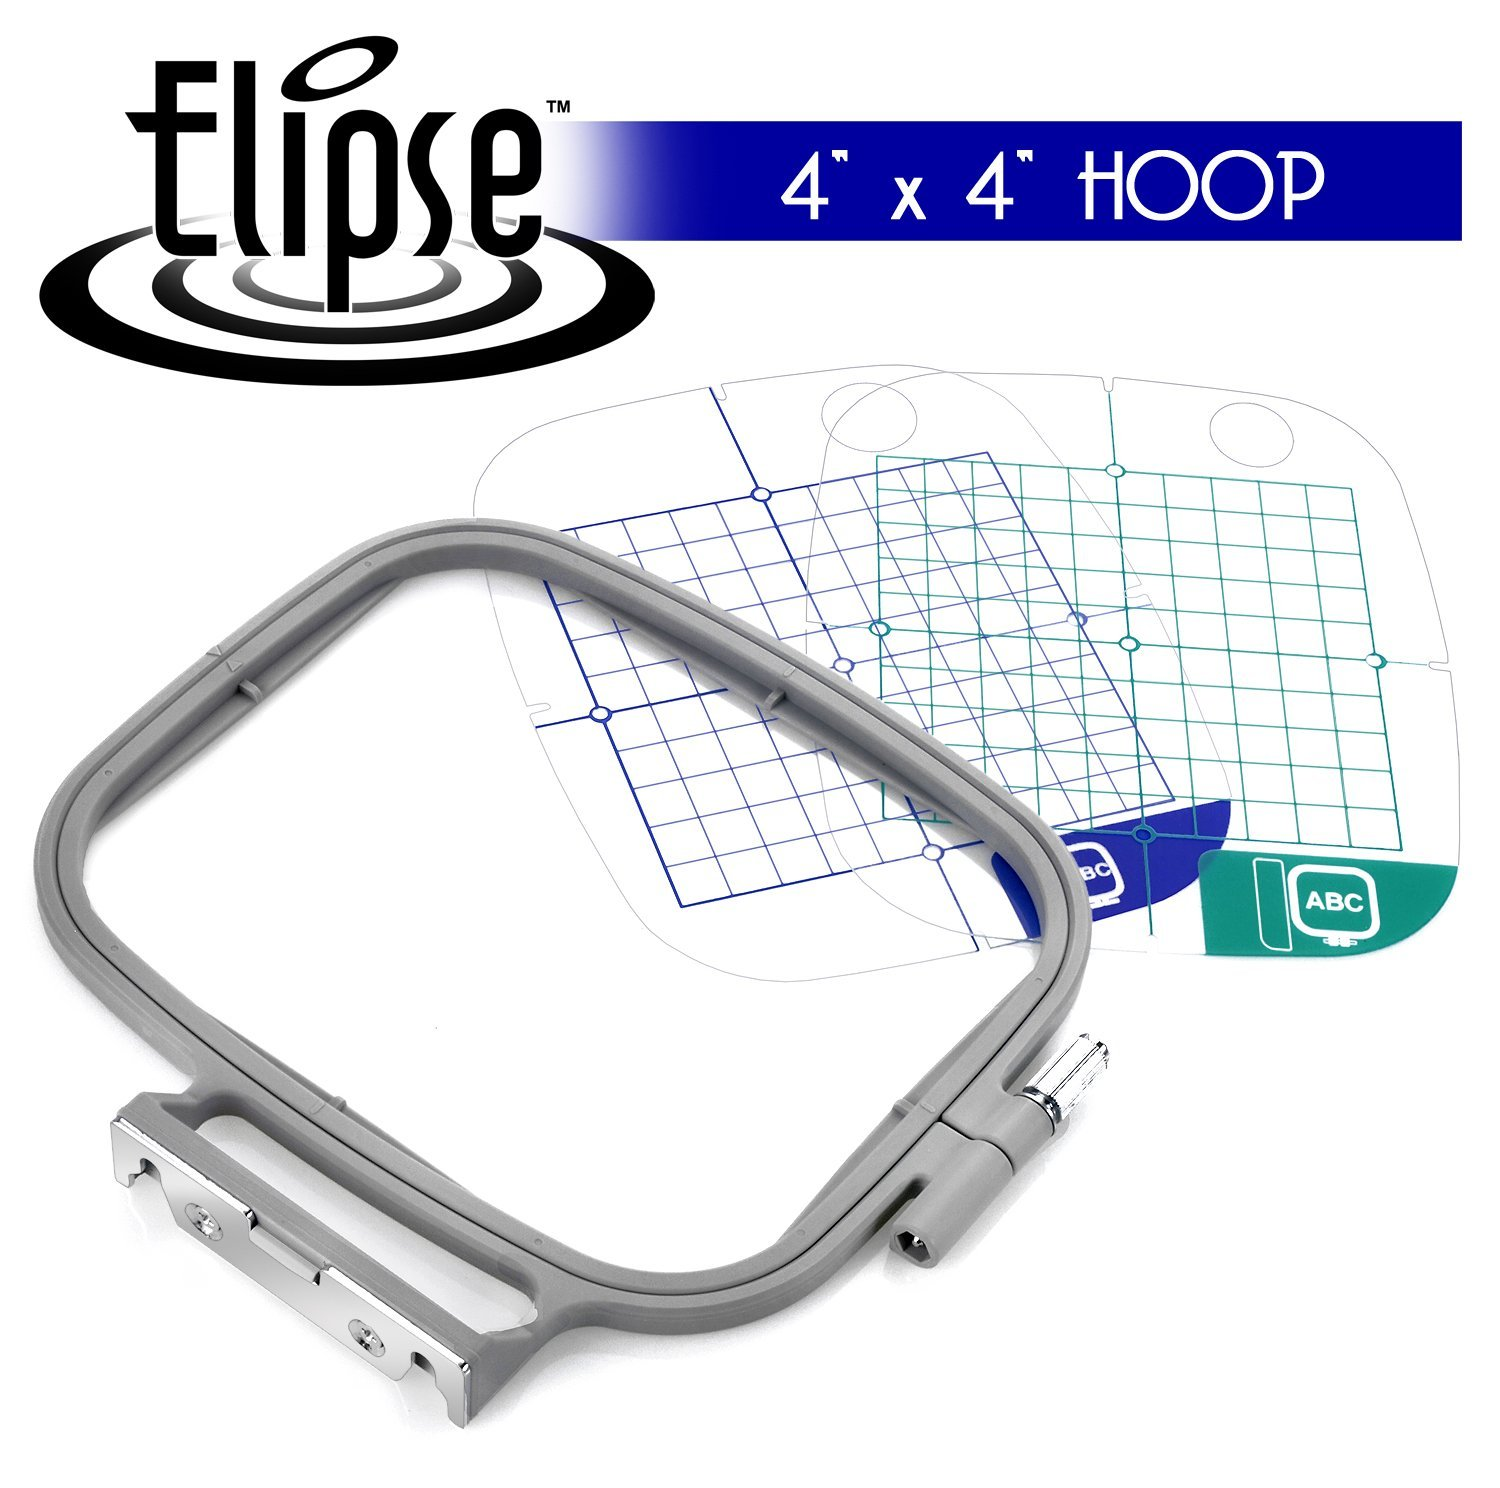 Elipse 4-inch x 4-inch Embroidery Hoop w/ Placement Grids for Brother Embroidery Machines